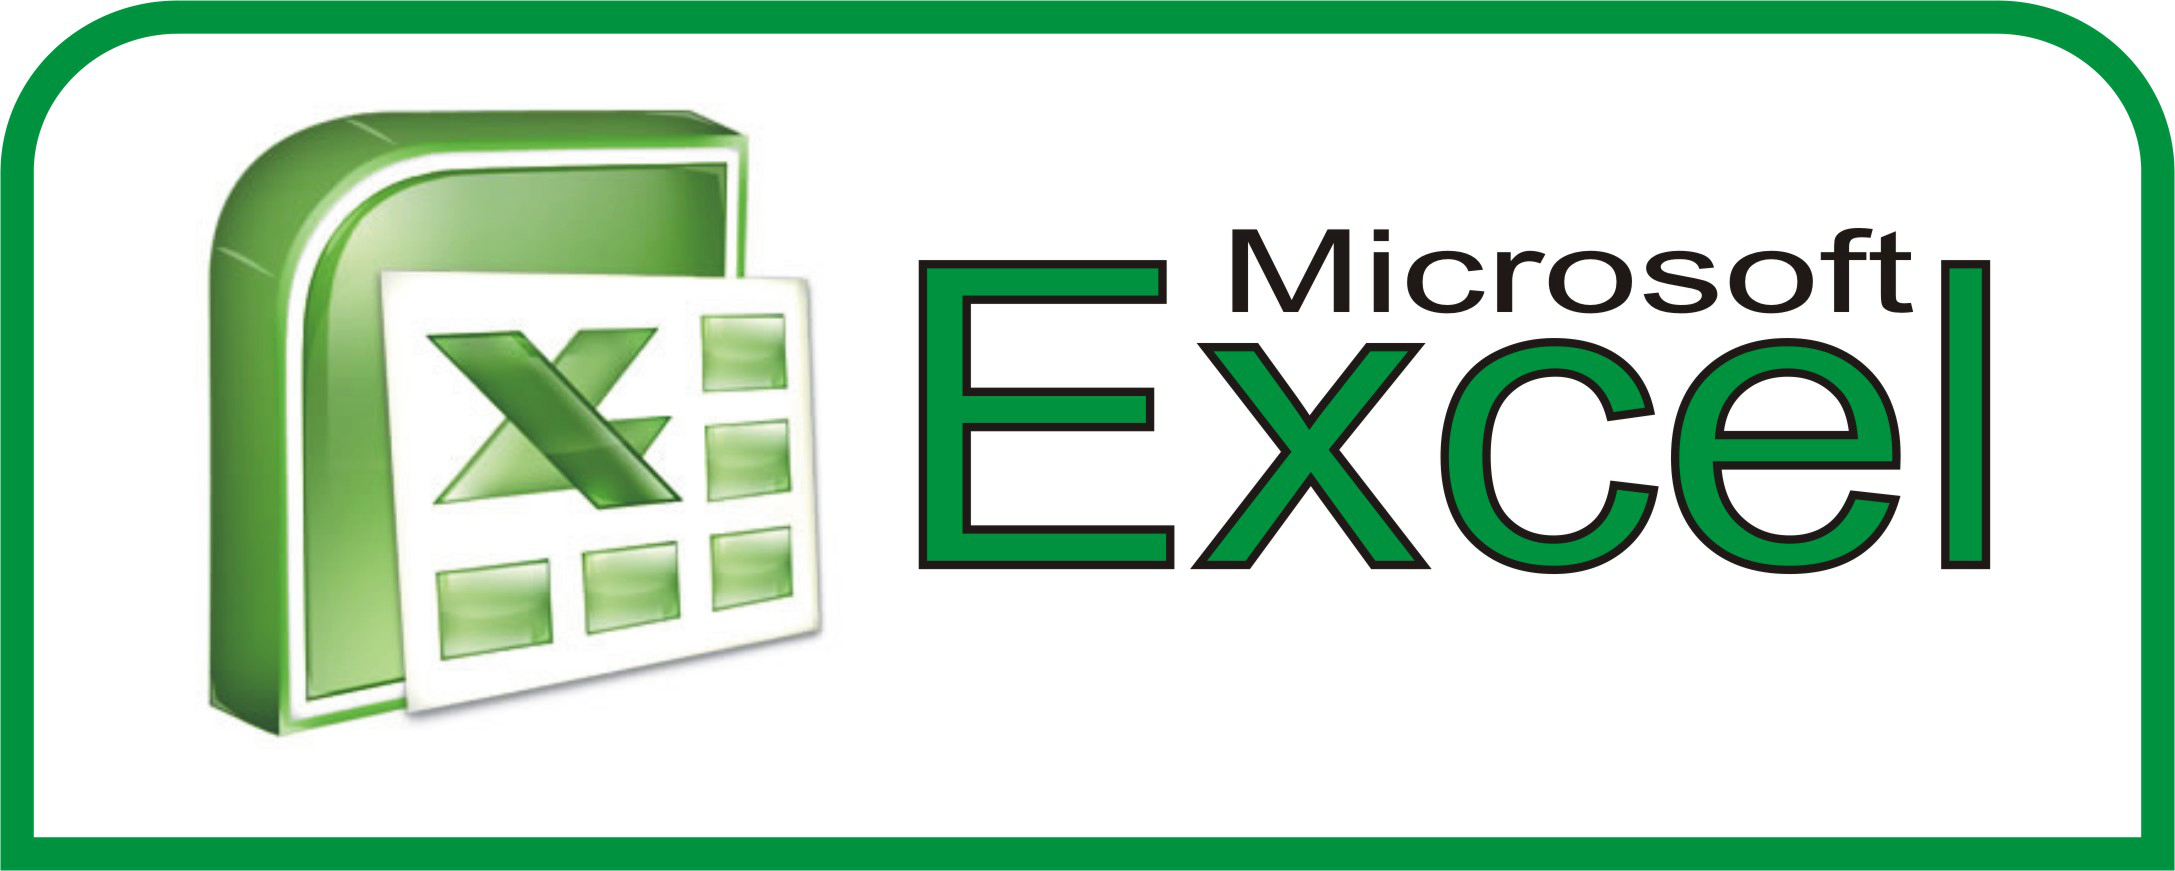 Ediblewildsus  Prepossessing  Excel Shortcuts You Probably Didnt Know About  Techdissected With Remarkable How To Auto Sort In Excel Besides Excel Rounding Error Furthermore Freeze A Column In Excel With Delightful Advisor Excel Also Excel Fill In Addition Break Even Analysis Excel Template And Convert Row To Column In Excel As Well As Water Mark In Excel Additionally Exp Function Excel From Techdissectedcom With Ediblewildsus  Remarkable  Excel Shortcuts You Probably Didnt Know About  Techdissected With Delightful How To Auto Sort In Excel Besides Excel Rounding Error Furthermore Freeze A Column In Excel And Prepossessing Advisor Excel Also Excel Fill In Addition Break Even Analysis Excel Template From Techdissectedcom